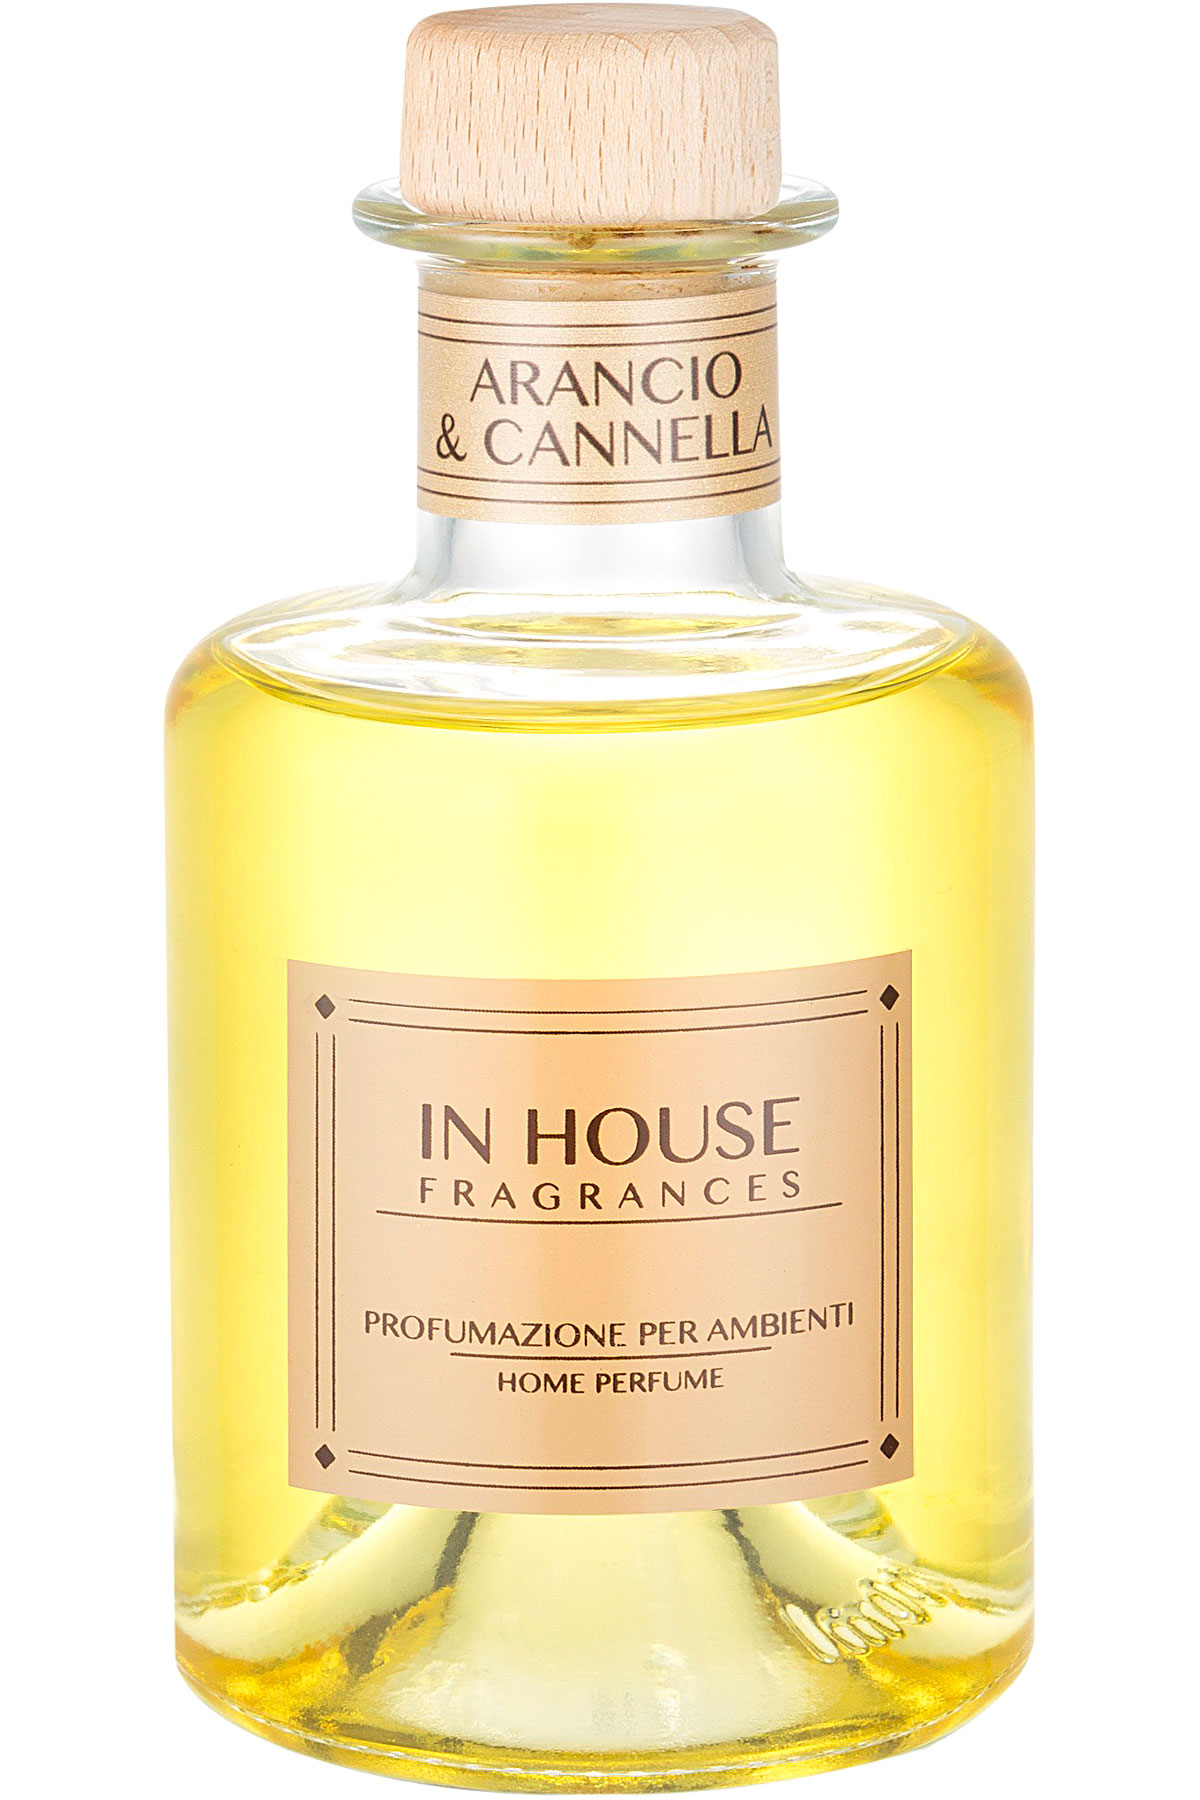 In House Fragrances Home Scents for Men, Ambra & Spezie - Home Diffuser - 200 Ml, 2019, 200 ml